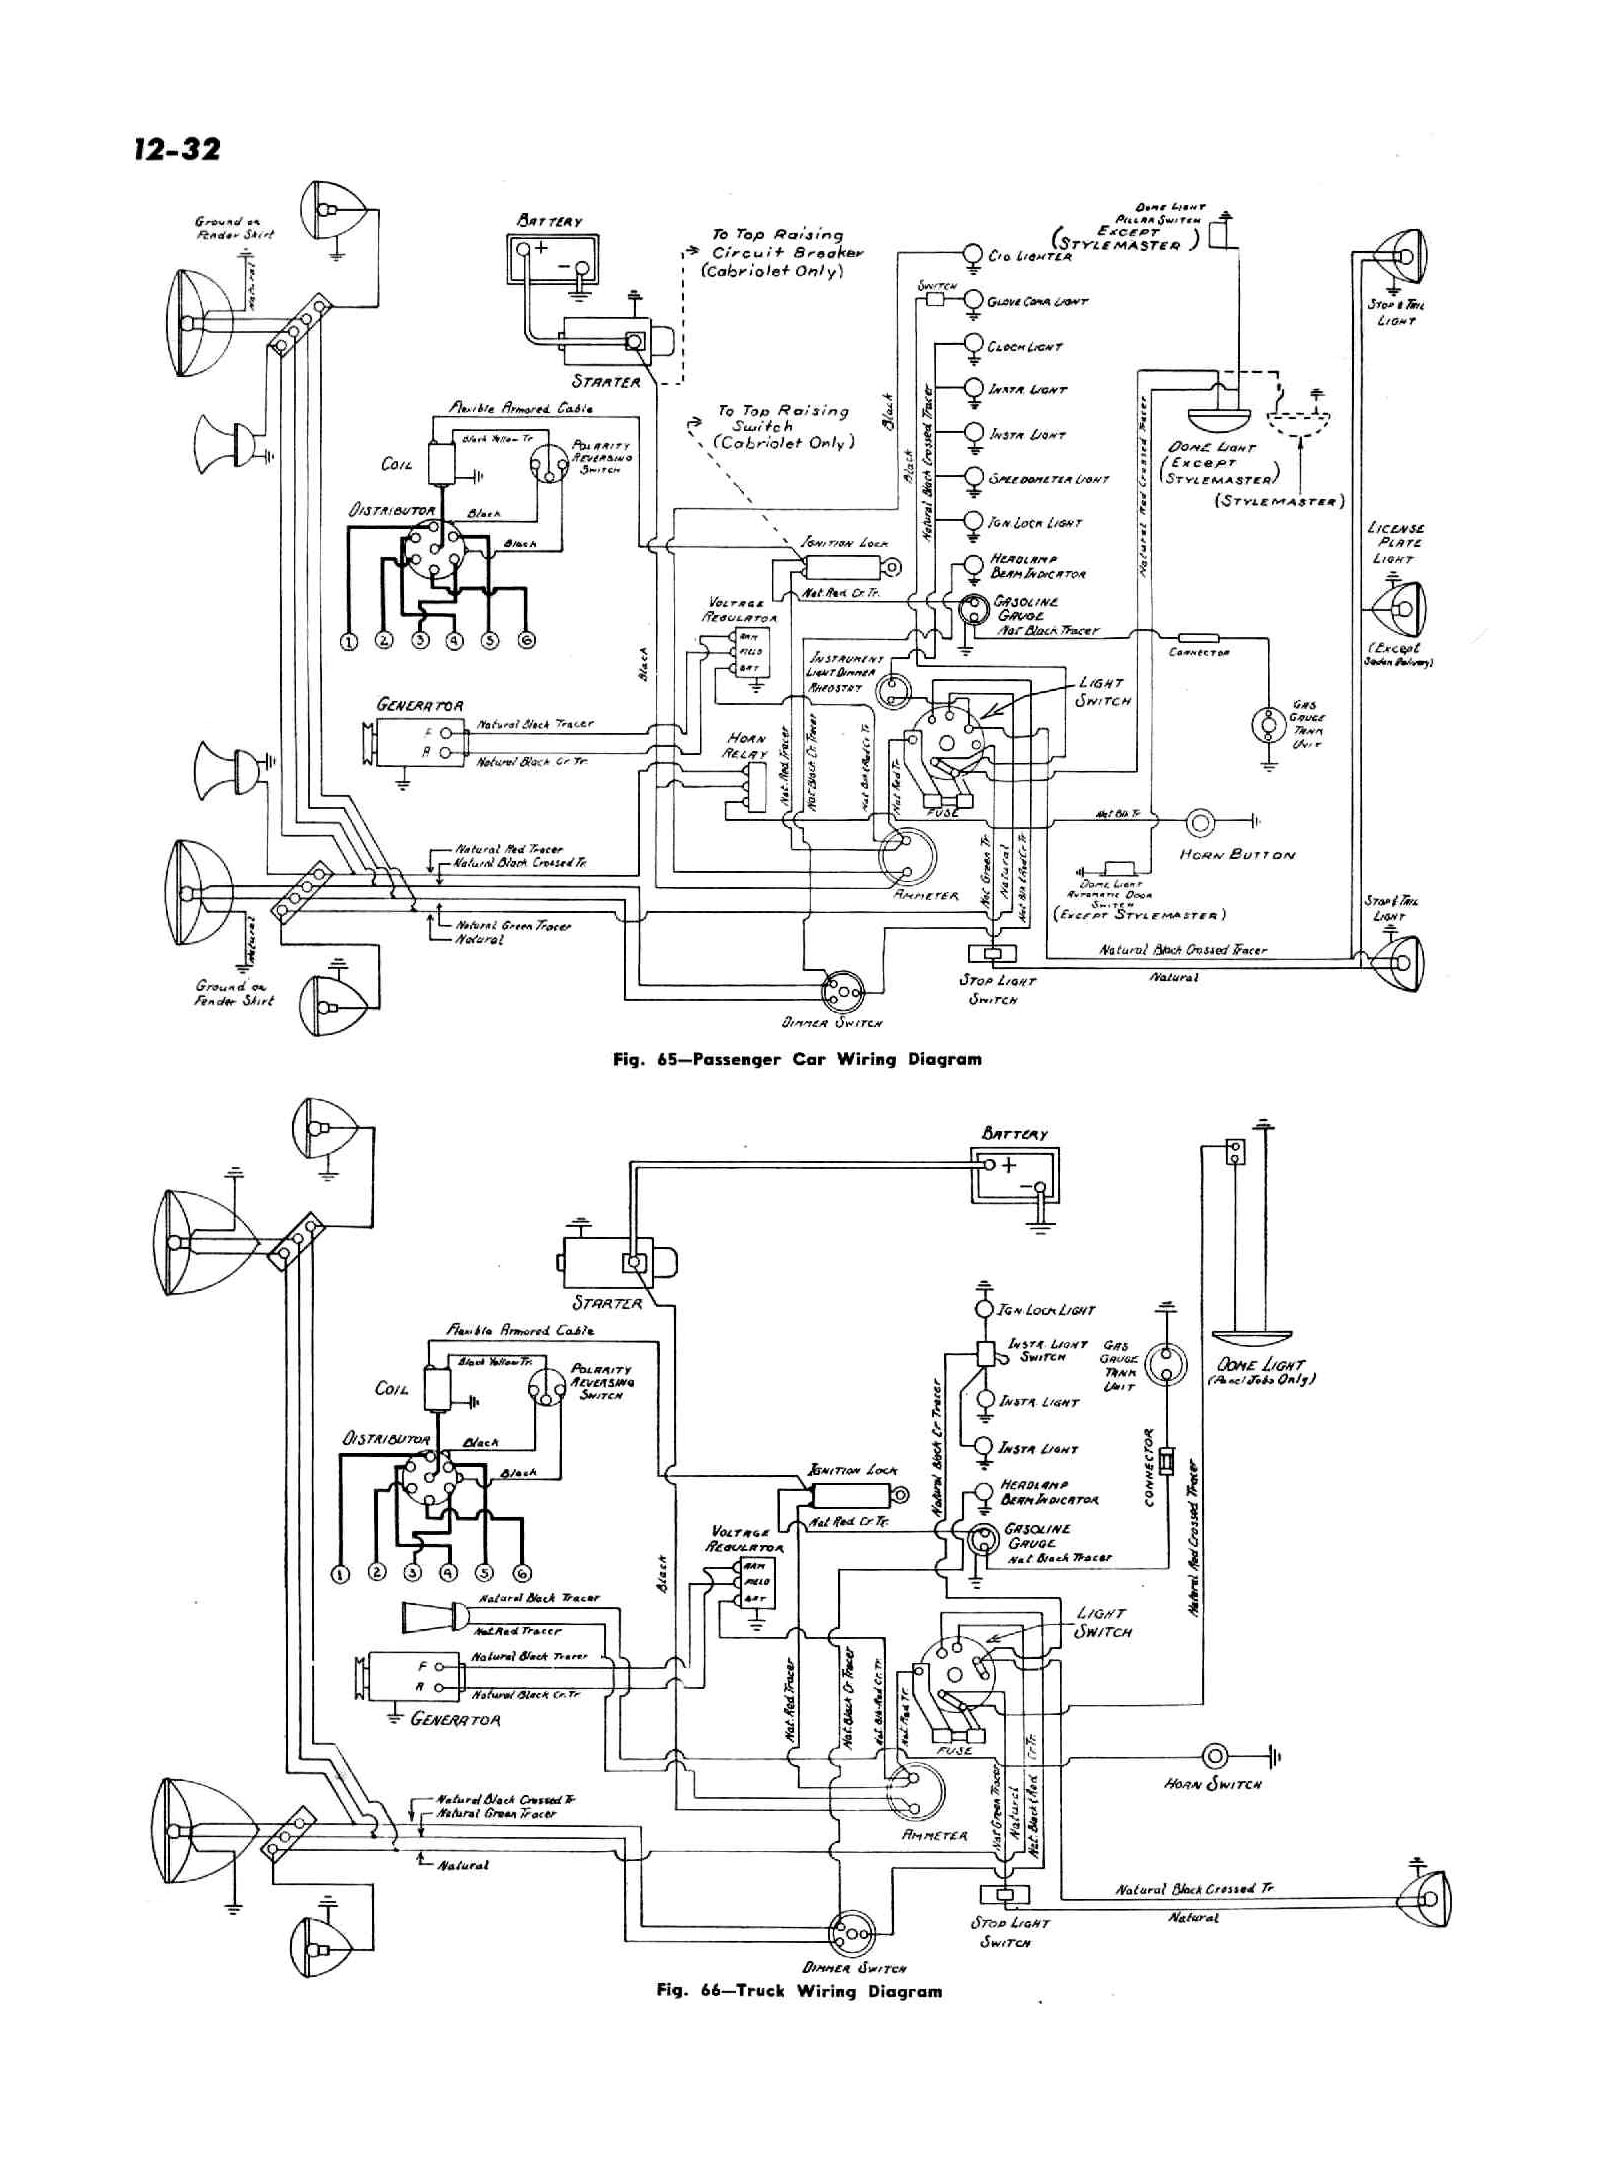 1962 Chevy Ii 100 Wiring Diagram Database Nova Schematic Diagrams 4 Door Sedan 1947 Passenger Car Truck